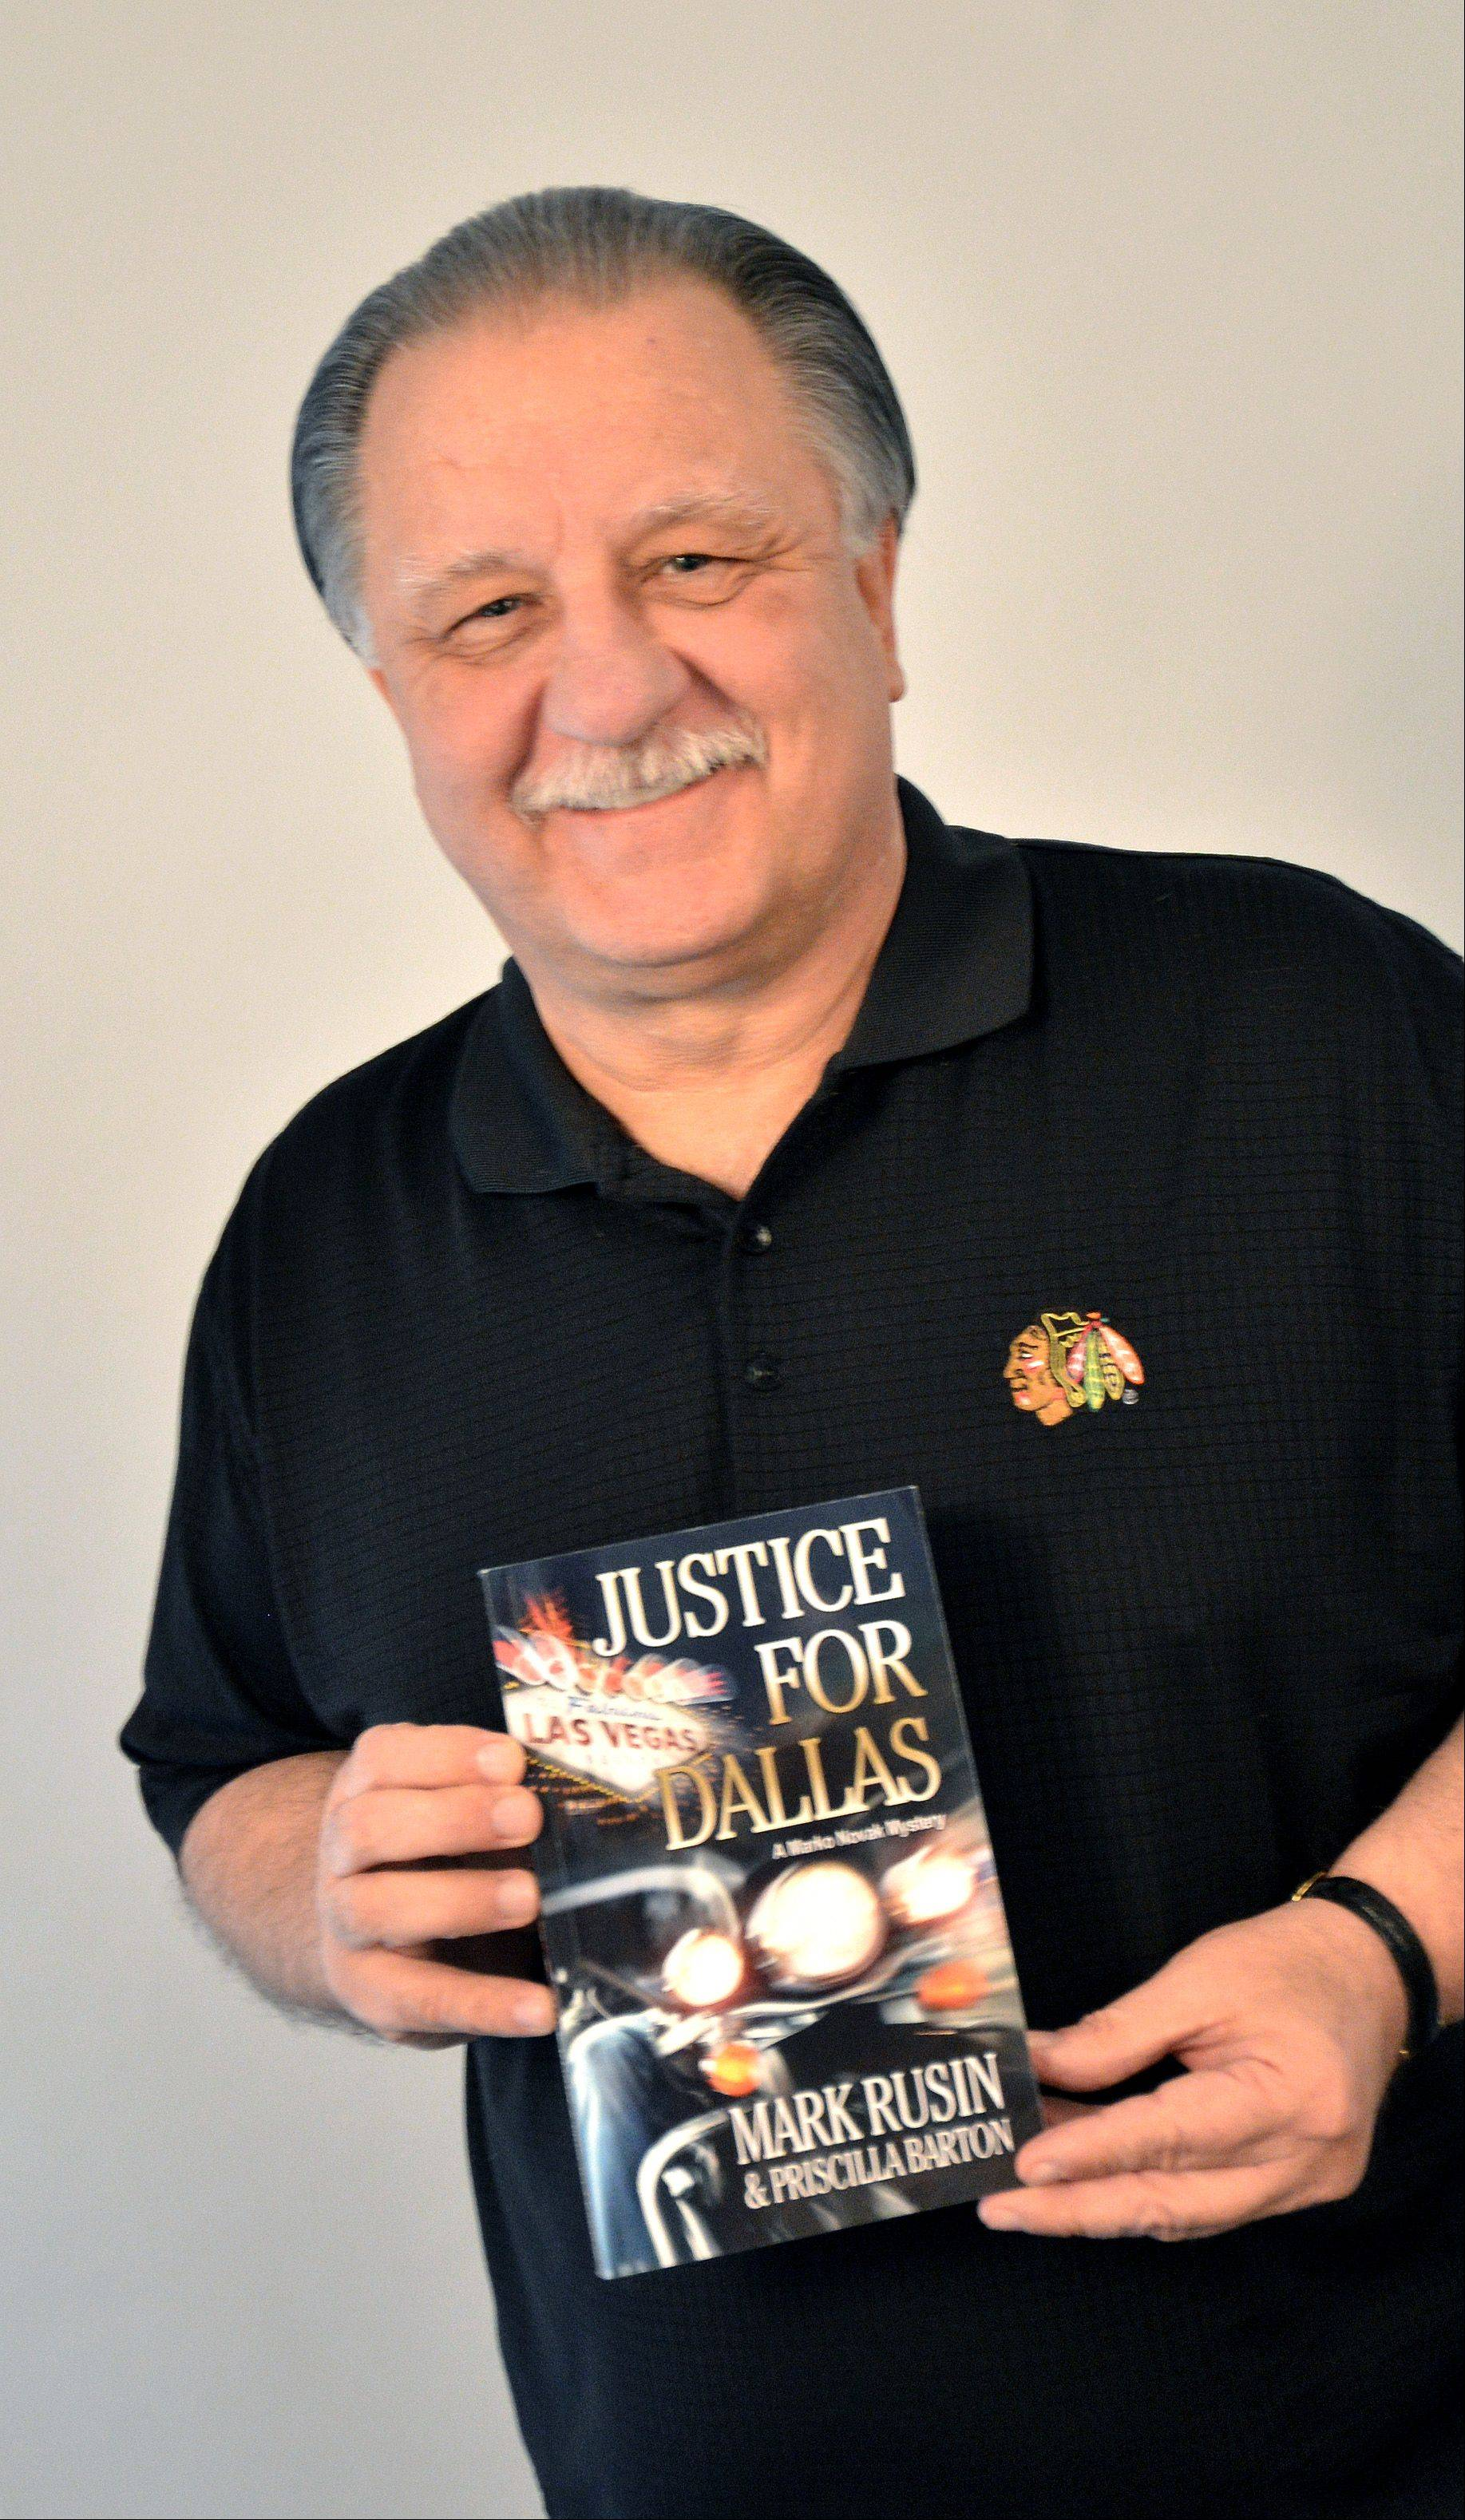 Lombard resident Mark Rusin, a former agent with the Bureau of Alcohol, Tobacco, Firearms and Explosives, has turned his experiences into a crime novel called �Justice for Dallas.� The book is getting good reviews from former colleagues and readers for its fast-paced action and authenticity.